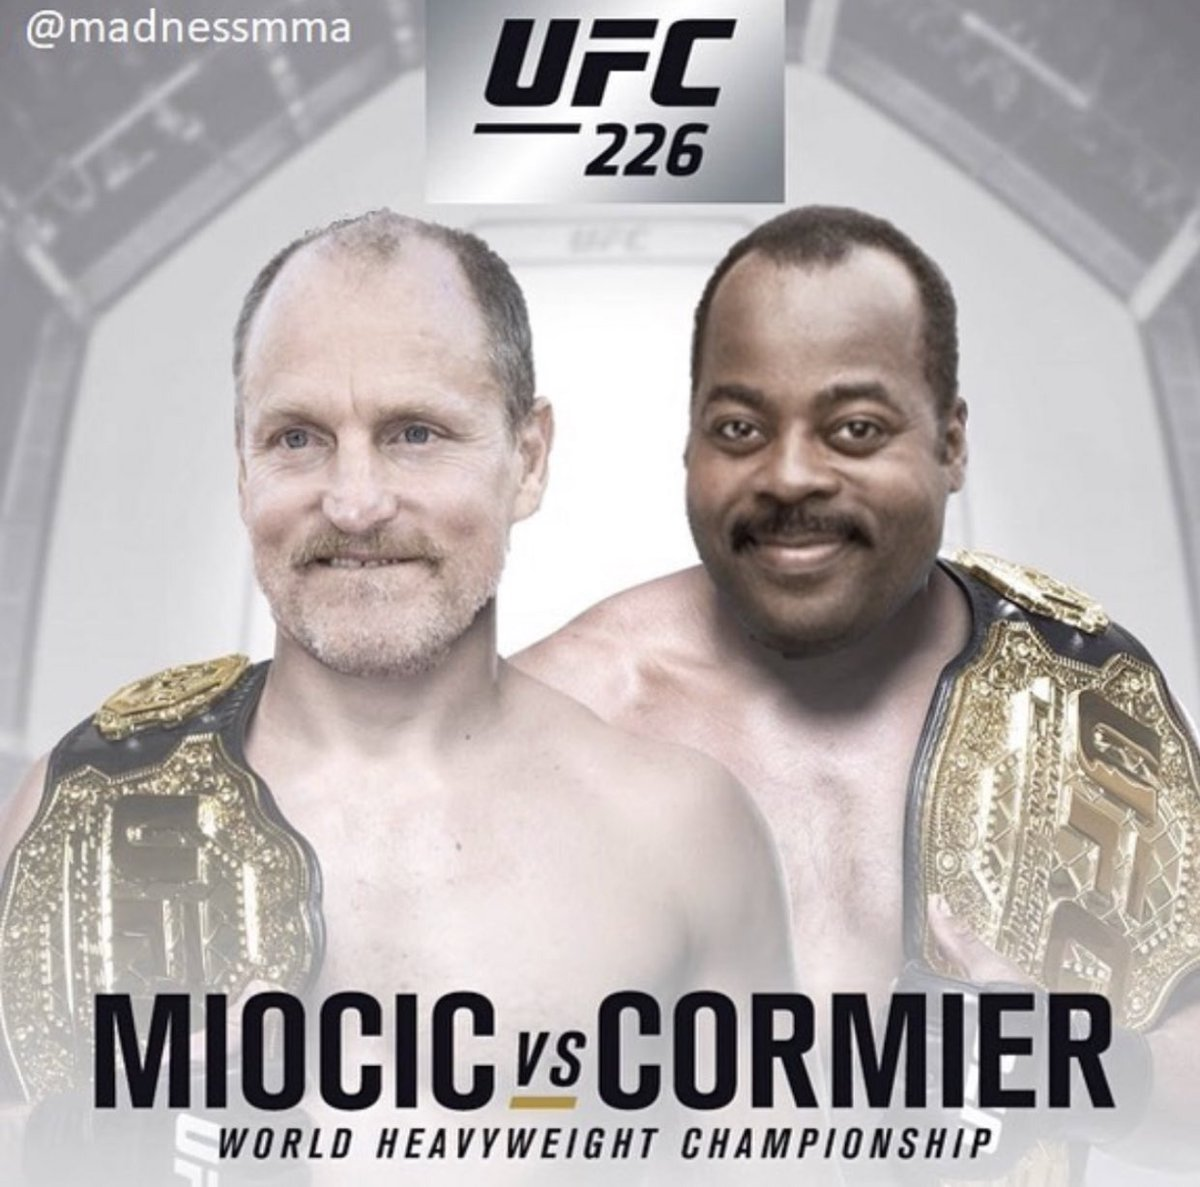 RT @MiddleEasy: This remains the funniest photoshop #UFC241<br>http://pic.twitter.com/ALUauK4Yg2